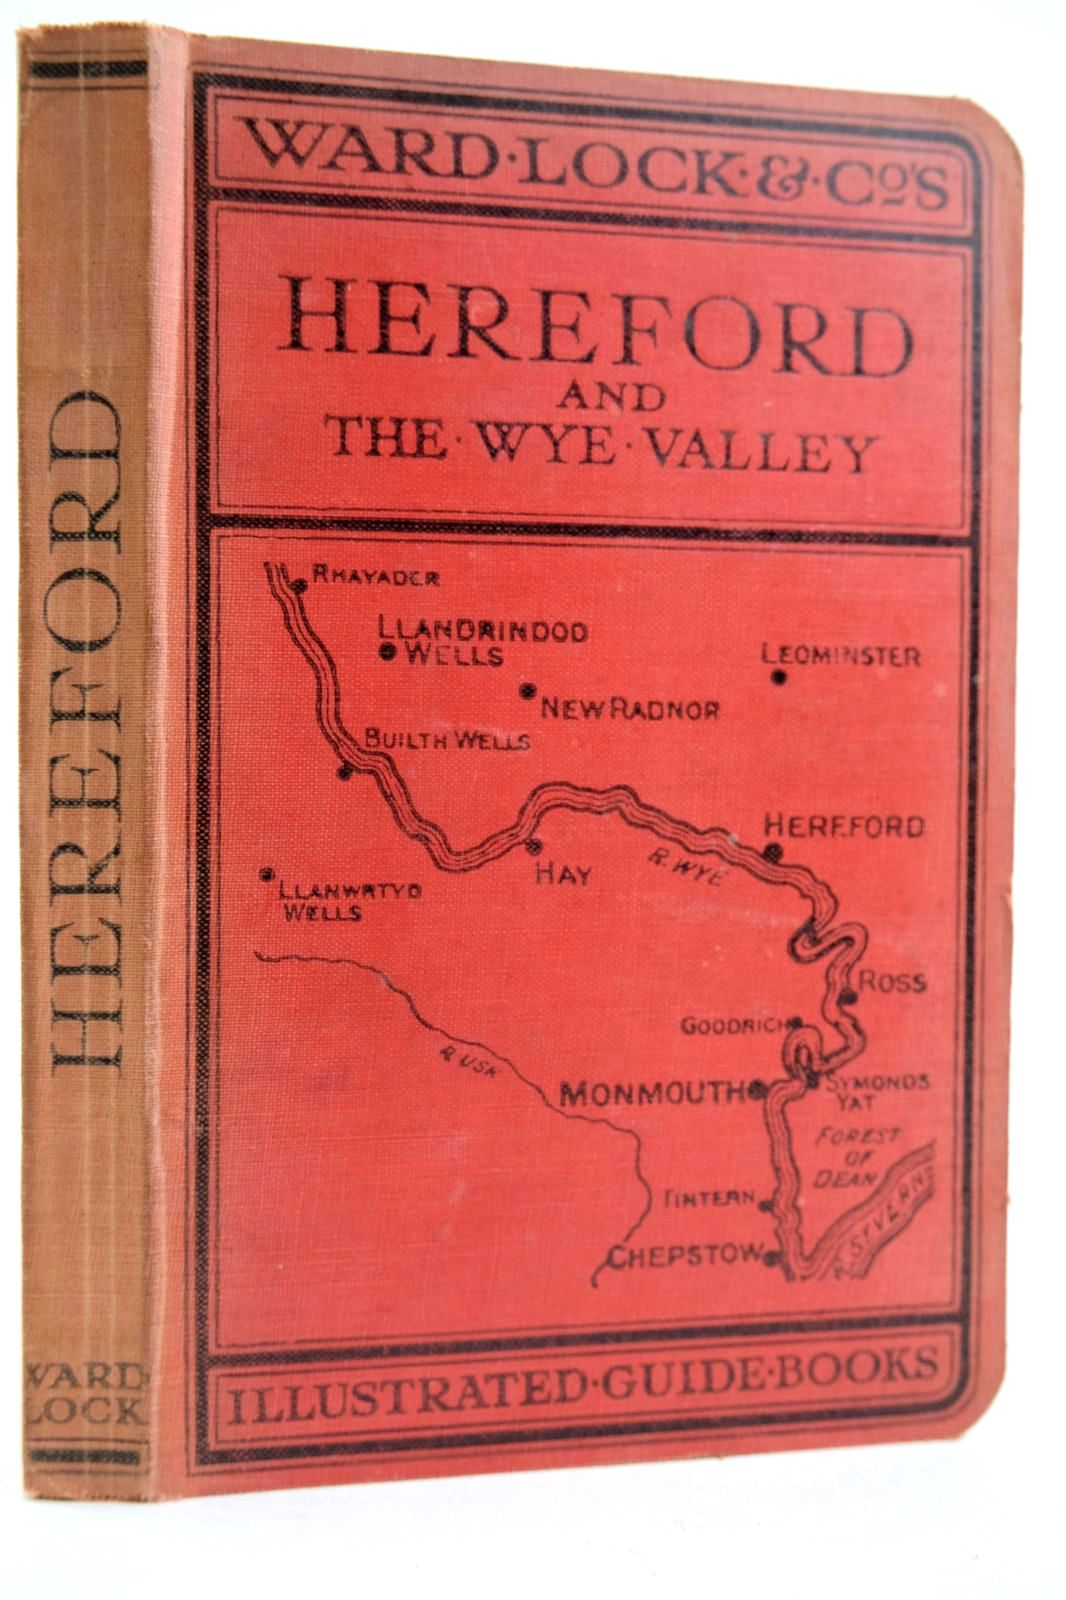 Photo of A PICTORIAL AND DESCRIPTIVE GUIDE TO HEREFORD AND THE WYE VALLEY published by Ward, Lock & Co. Limited (STOCK CODE: 2132605)  for sale by Stella & Rose's Books